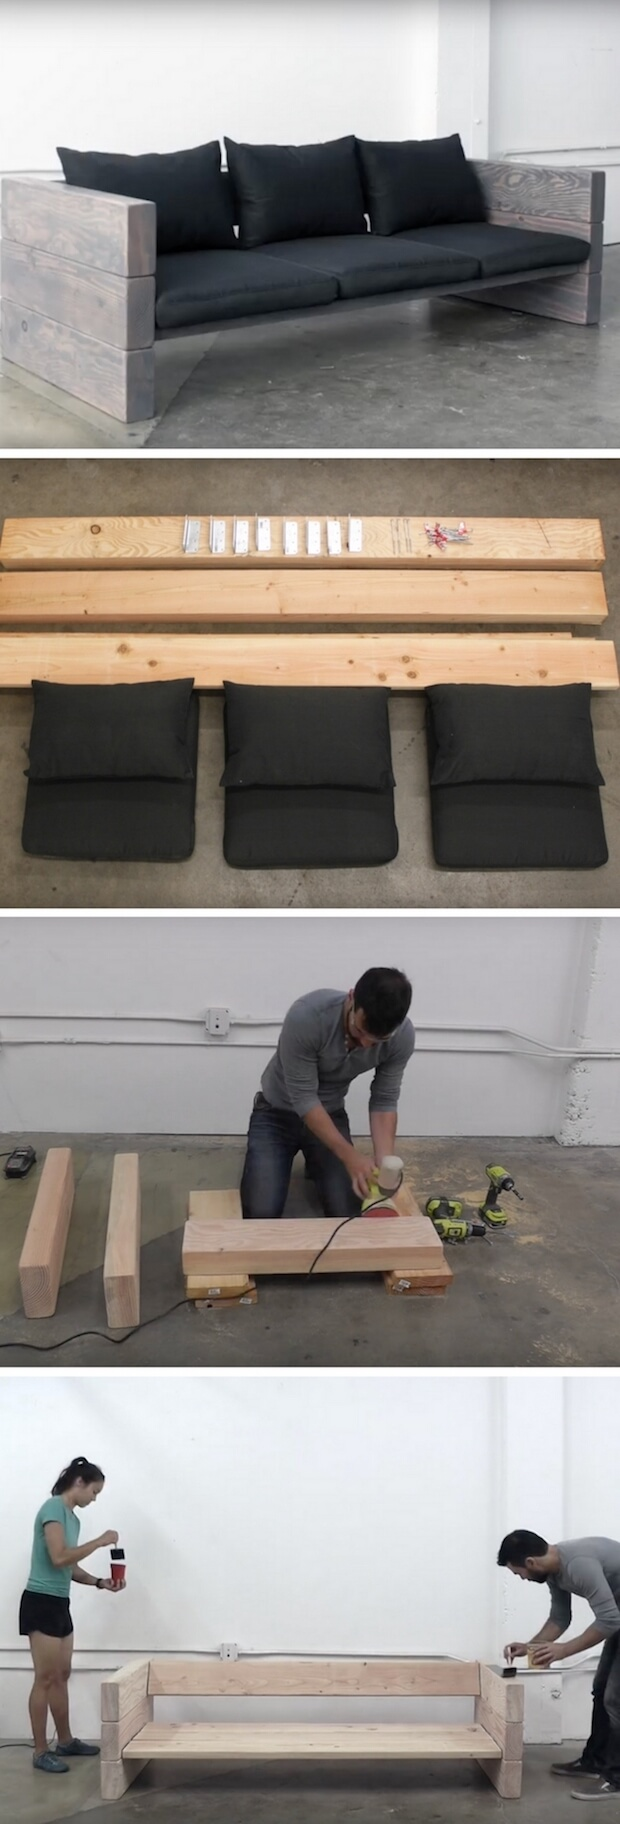 diy sofa ideas